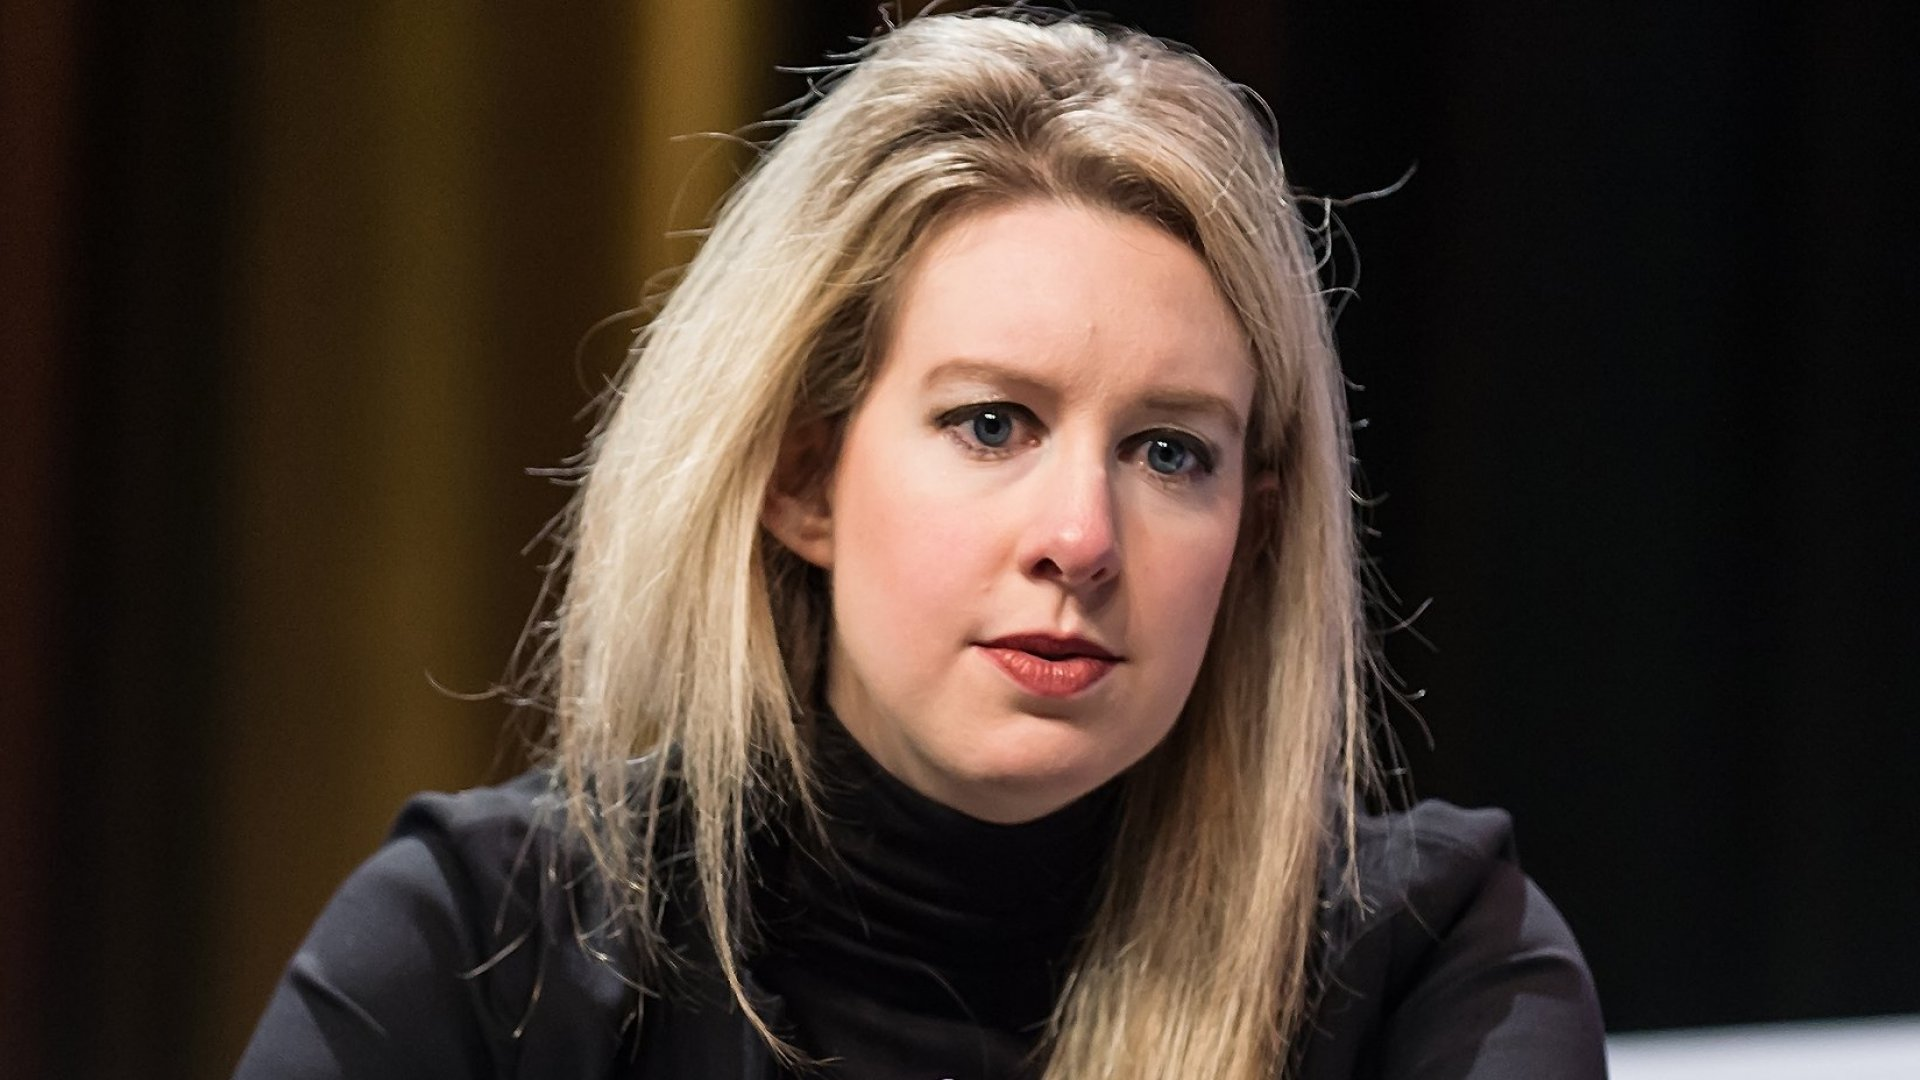 Elizabeth Holmes, the founder of blood testing company Theranos, mislead investors, government regulators, and employees.